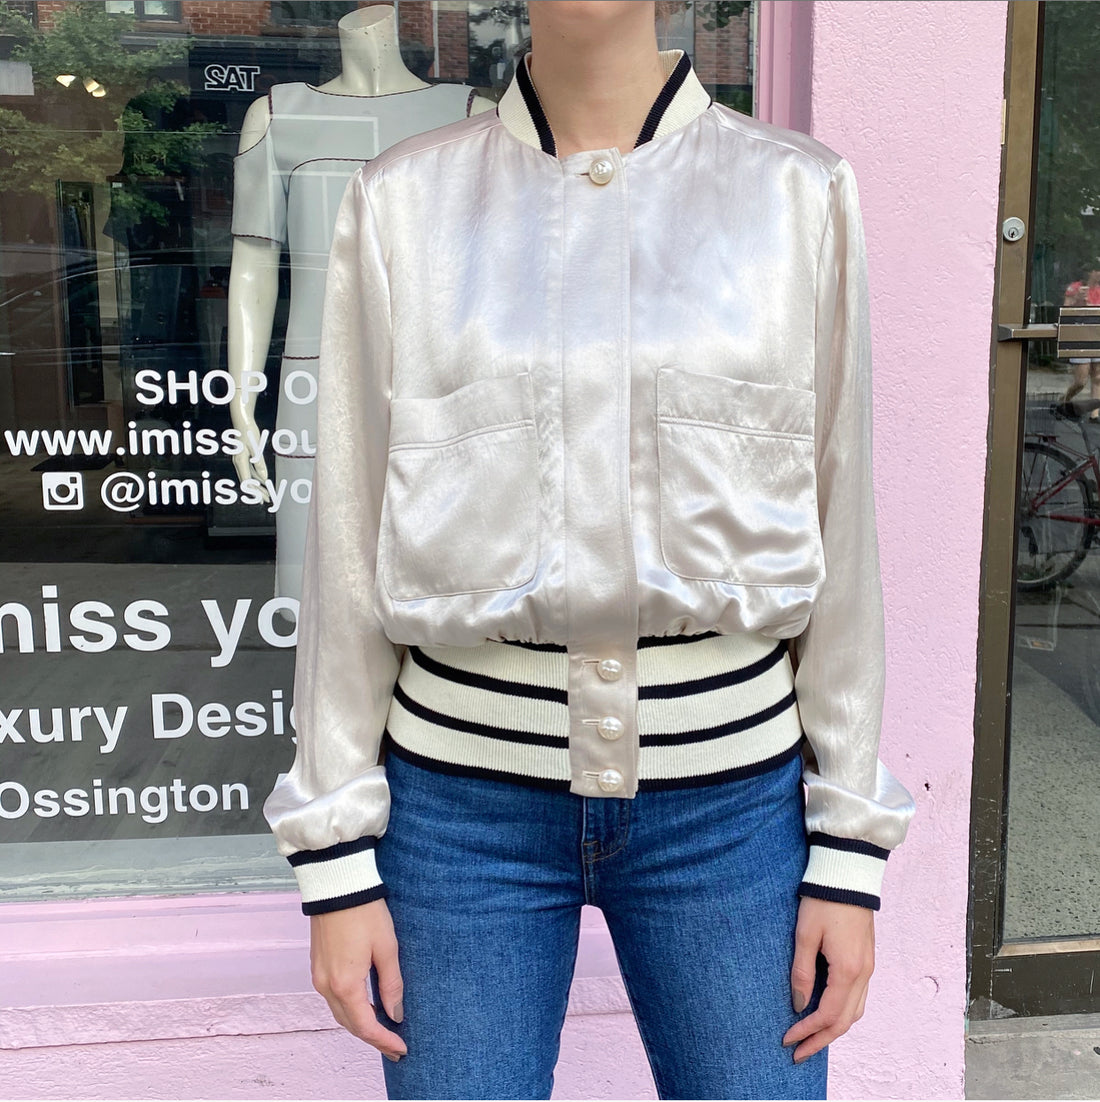 Chanel Blush Nude Satin Bomber Jacket with Pearl Buttons - FR38 / USA 6